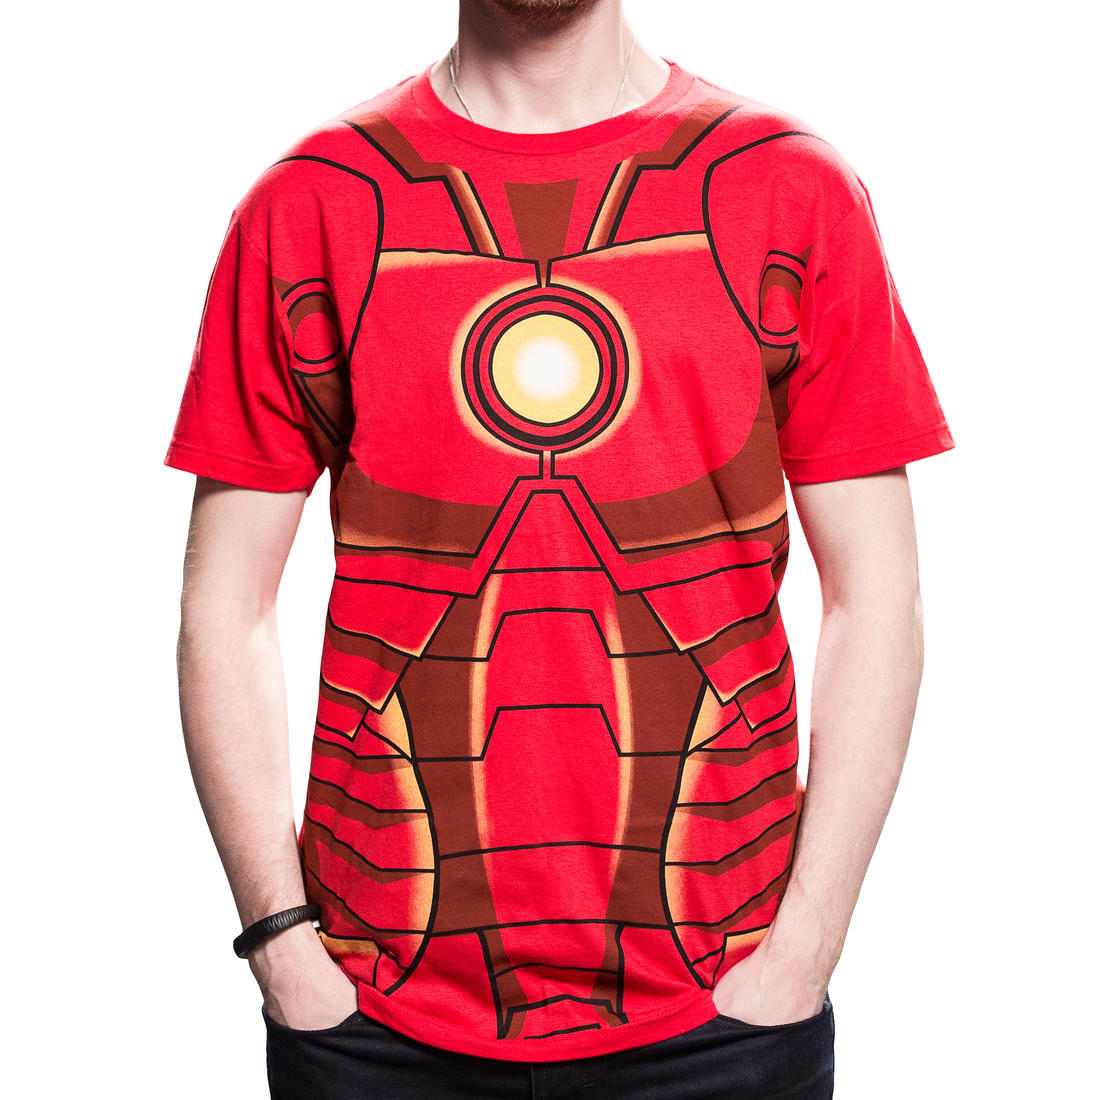 Iron man chest plate images galleries for Iron man shirt for men